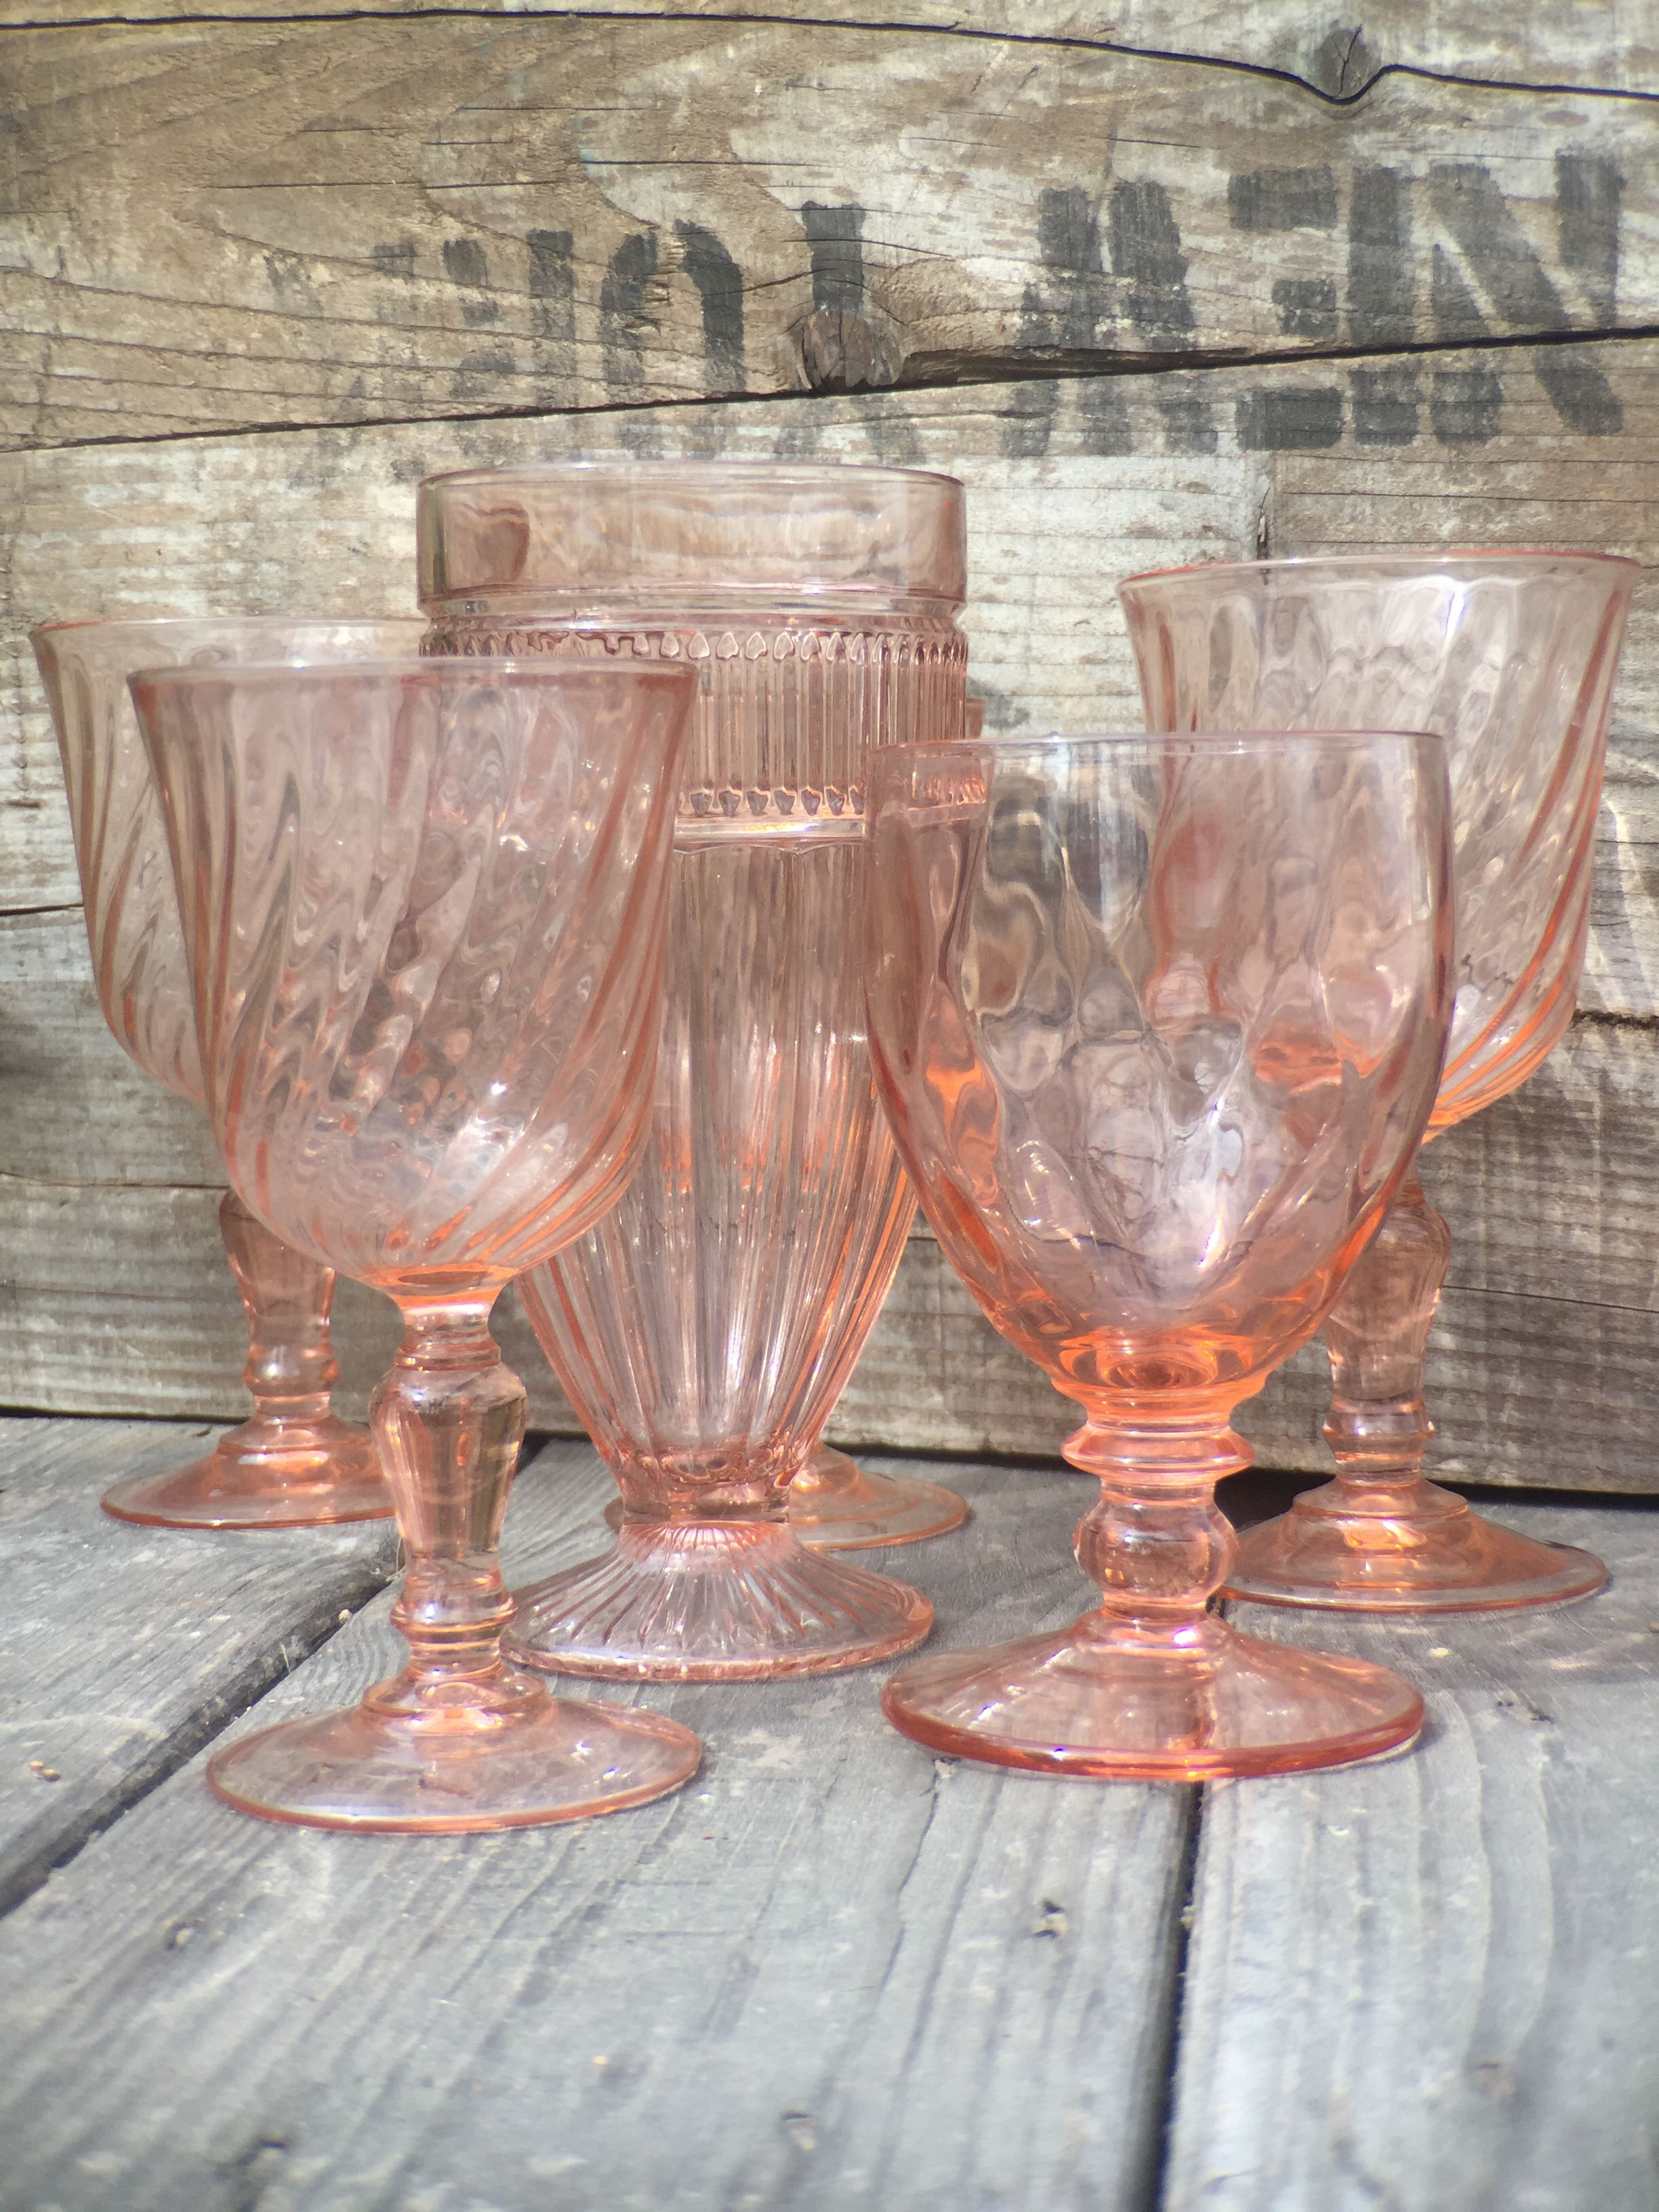 Pin On Glassware And Tableware